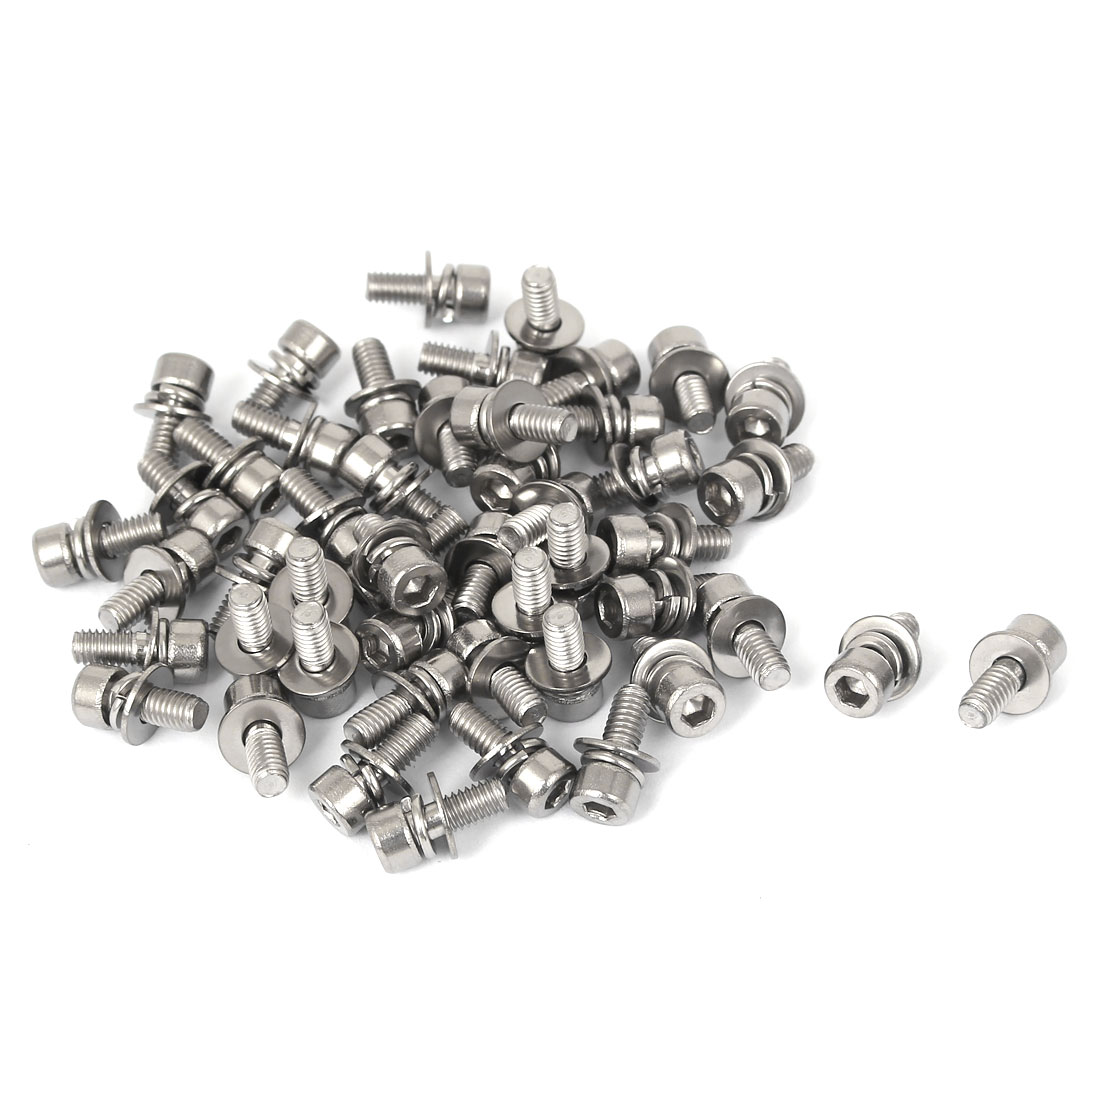 M4 x 10mm 0.7mm Thread Pitch 304 Stainless Steel Hex Socket Head Cap Screw w Washer 50 Pcs